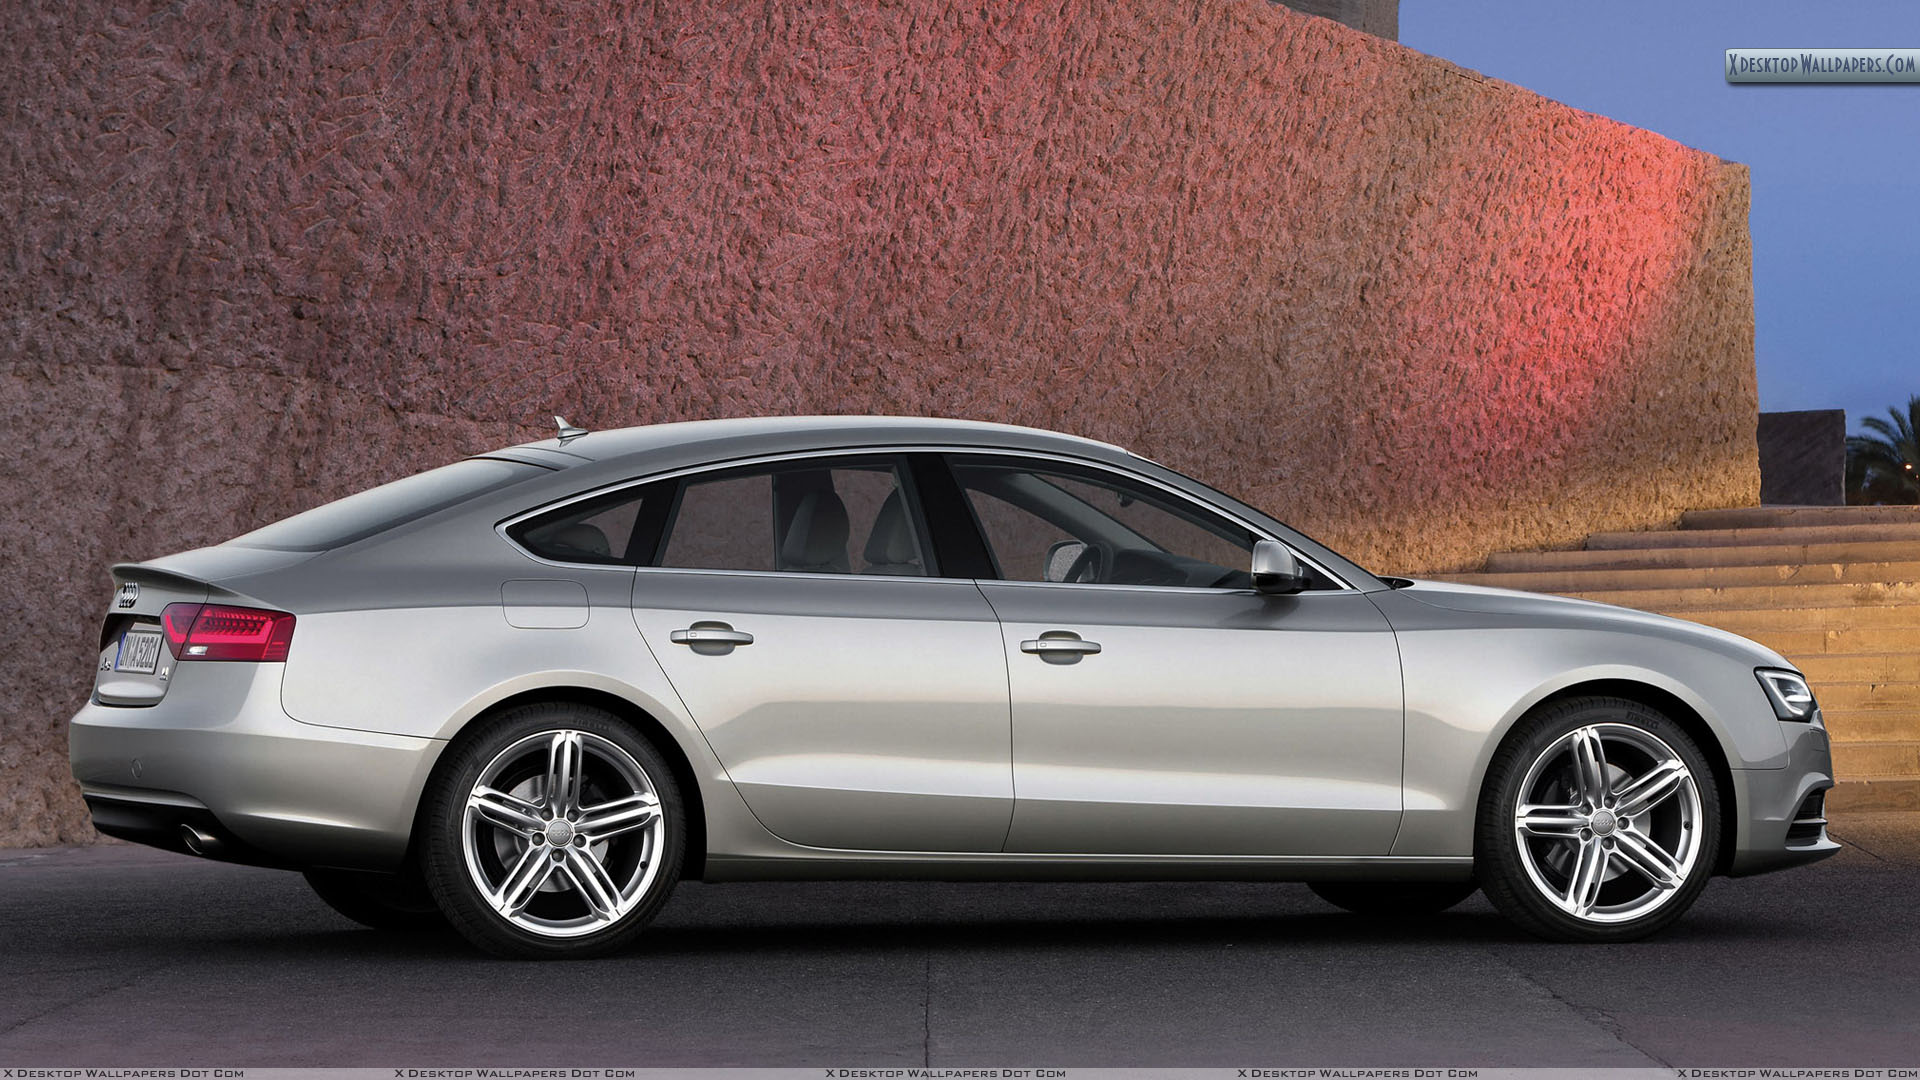 side pose of 2012 audi a5 sportback outside building wallpaper. Black Bedroom Furniture Sets. Home Design Ideas